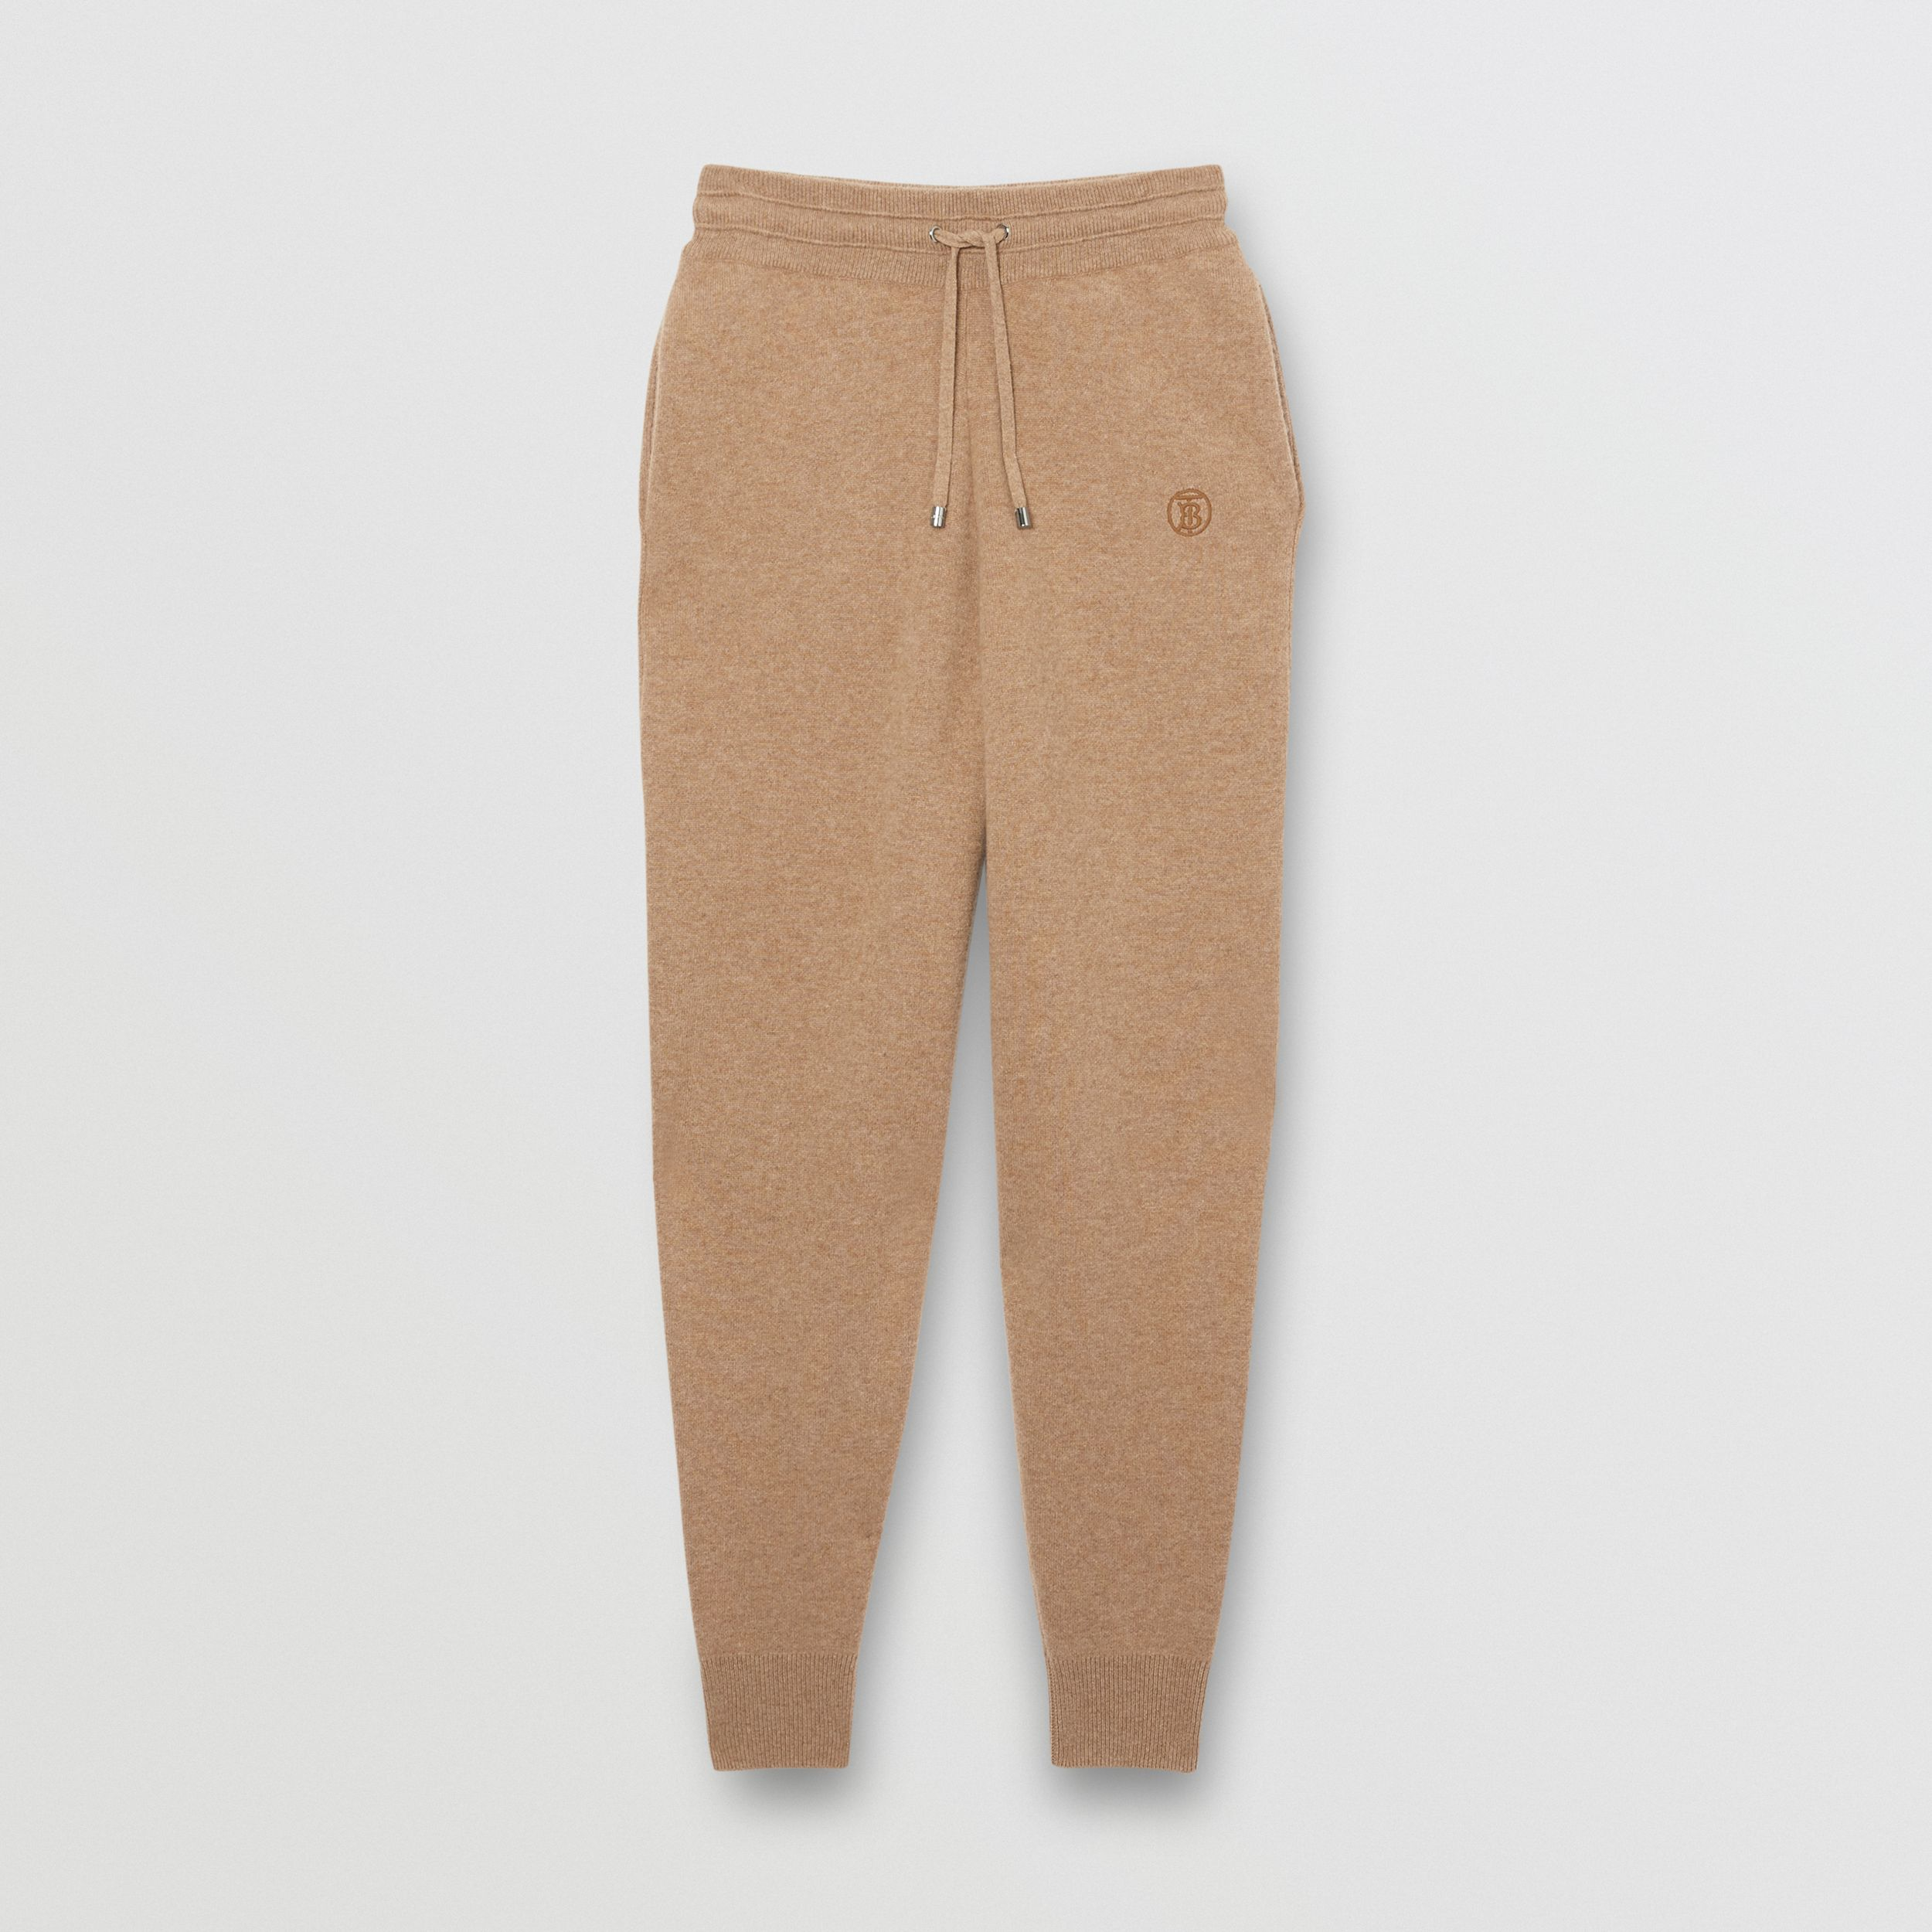 Monogram Motif Cashmere Blend Trackpants in Pale Coffee - Women | Burberry - 4